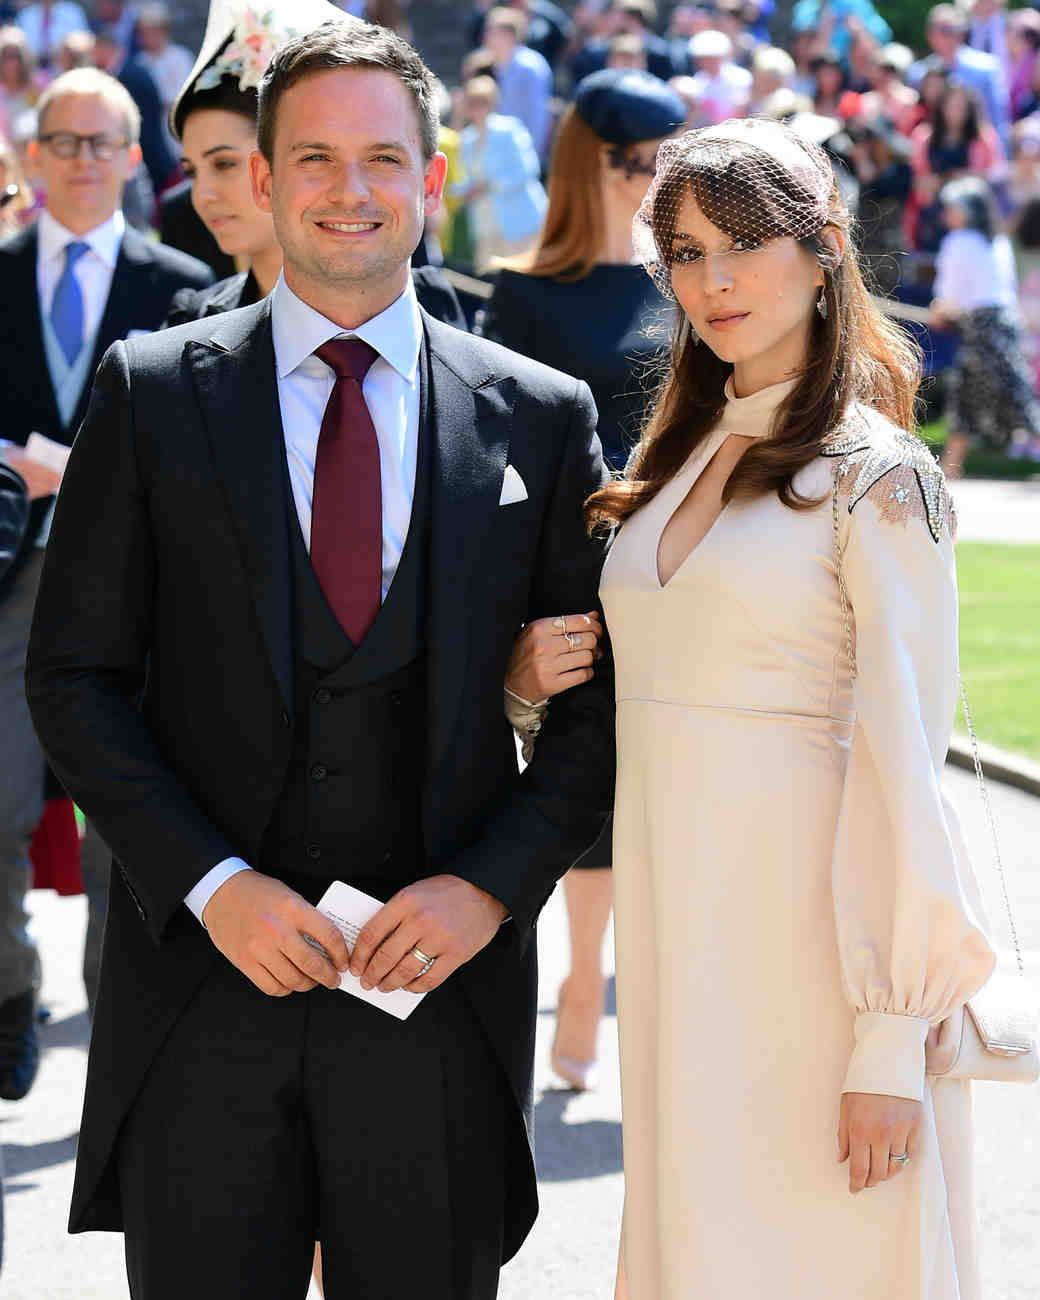 Patrick J Adams and Troian Bellisario Royal Wedding 2018